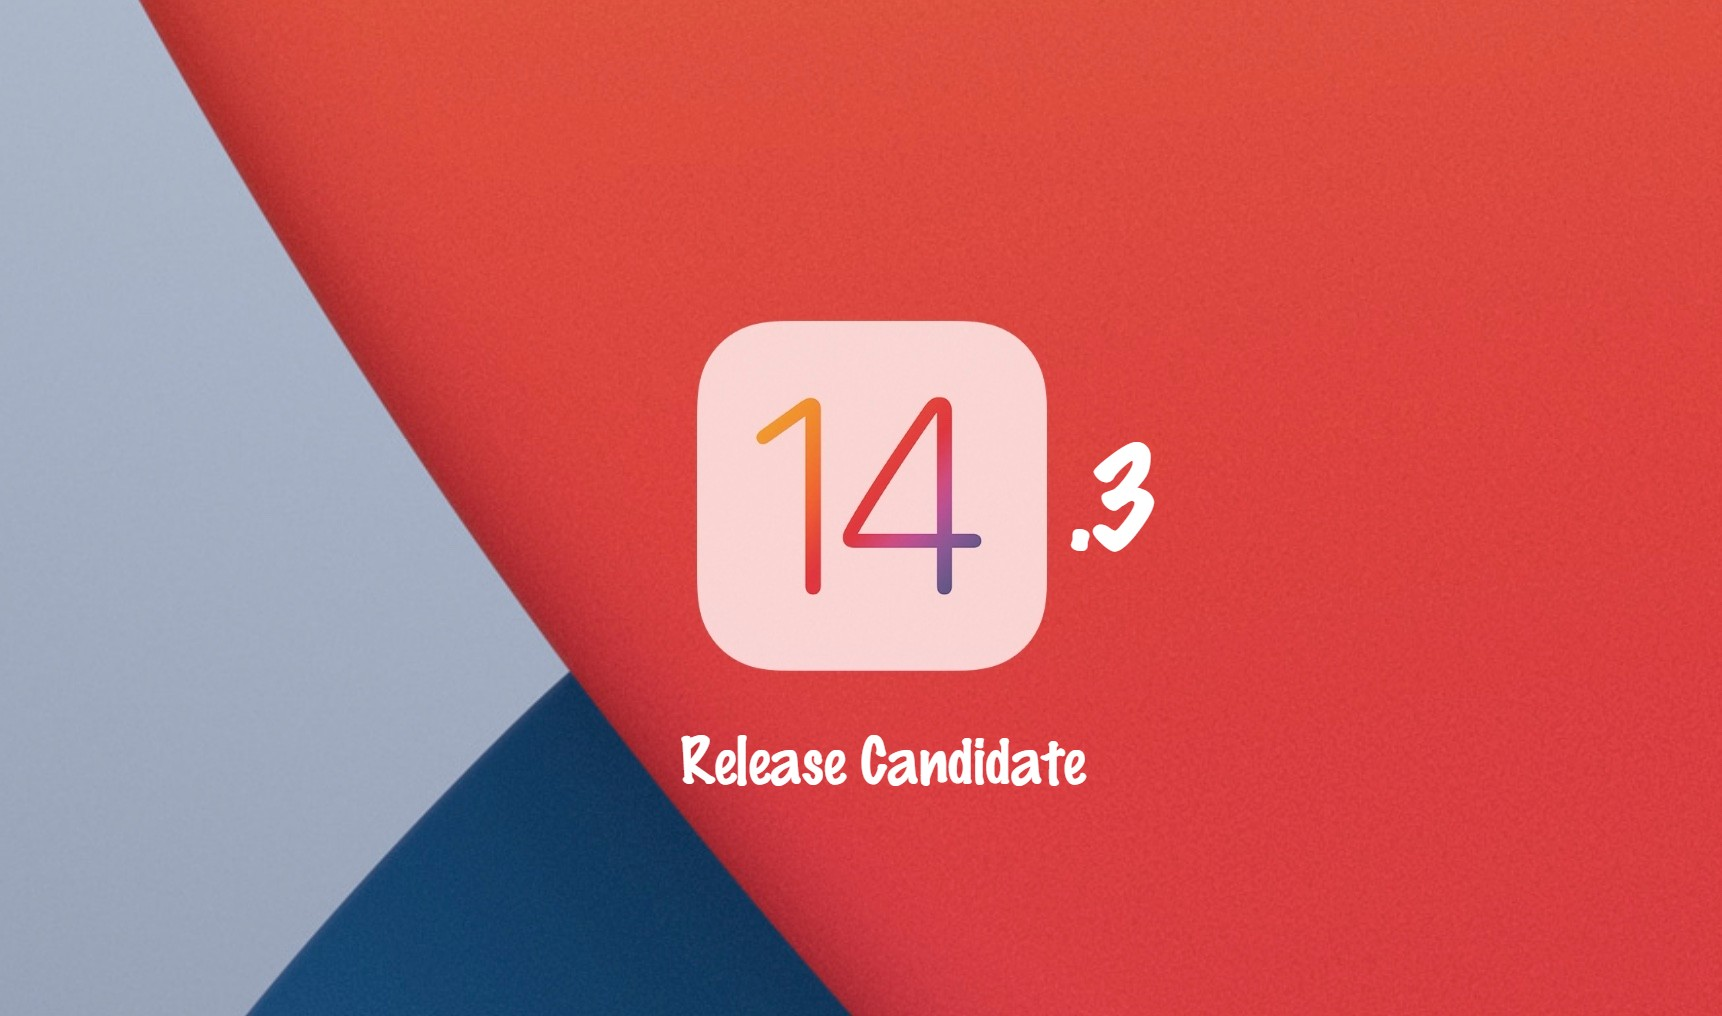 iOS-14.3-release-candidate